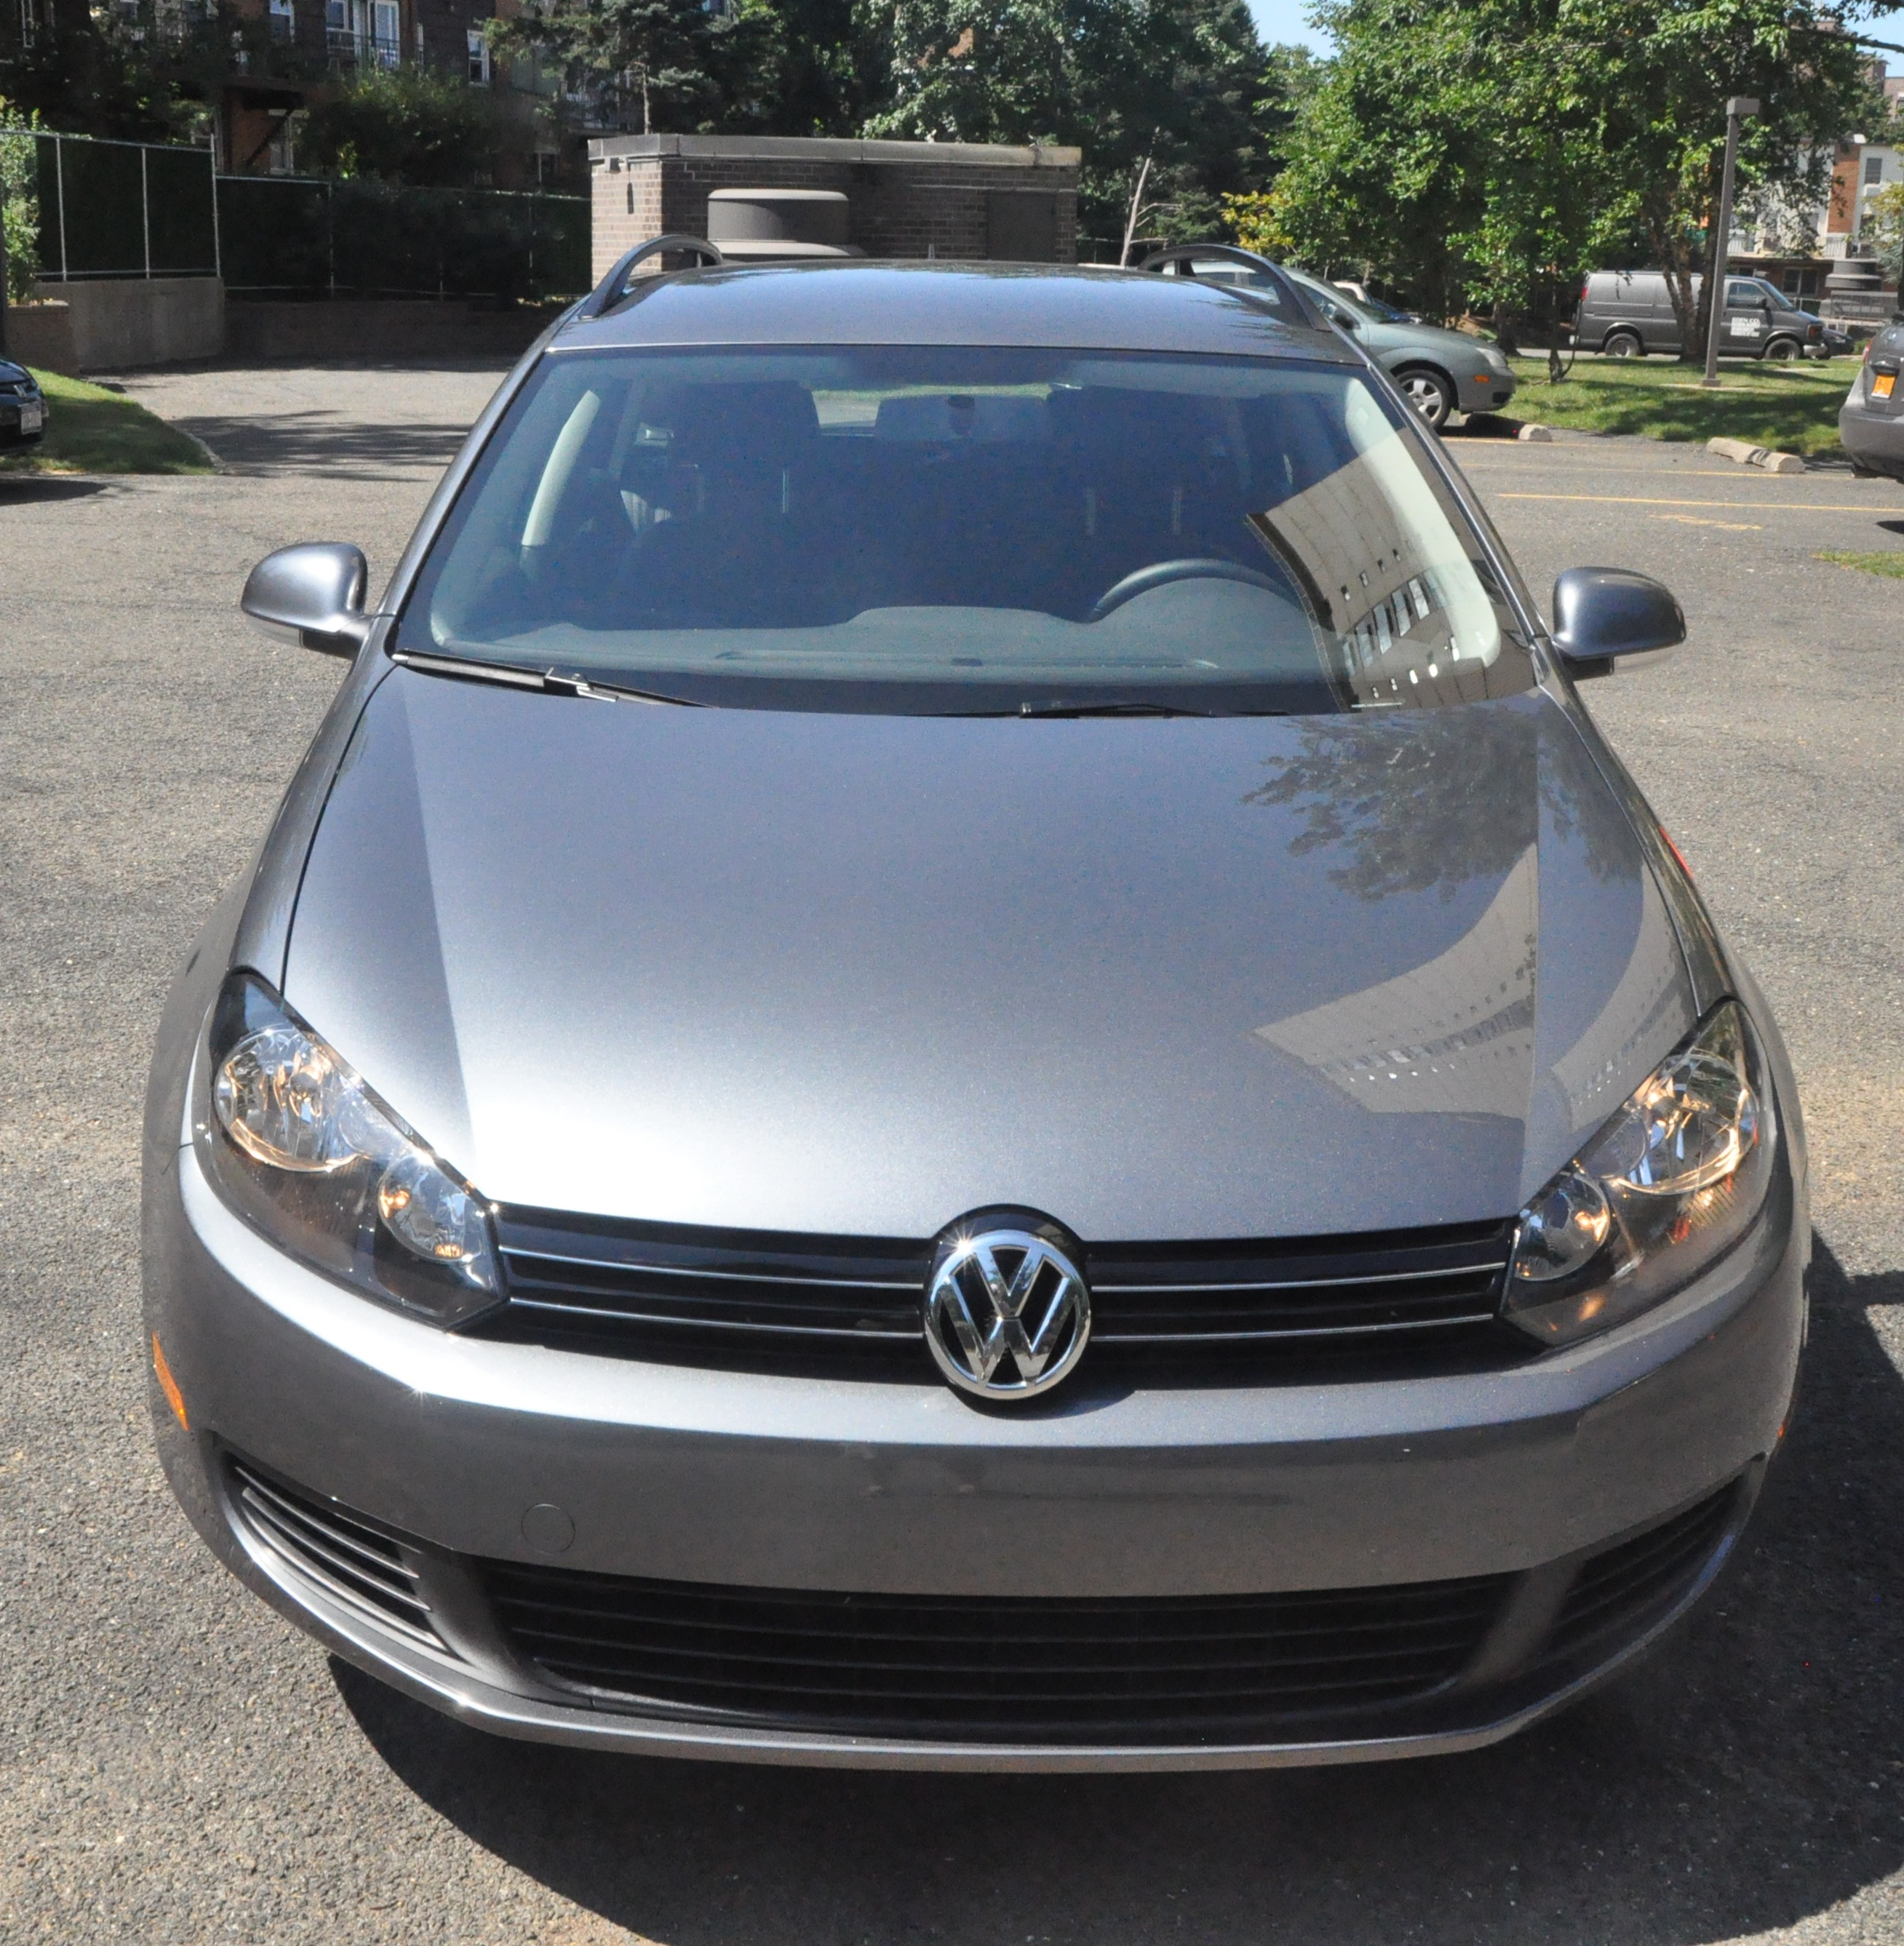 2011 volkswagen jetta sportwagen tdi review and test drive the green car driver. Black Bedroom Furniture Sets. Home Design Ideas